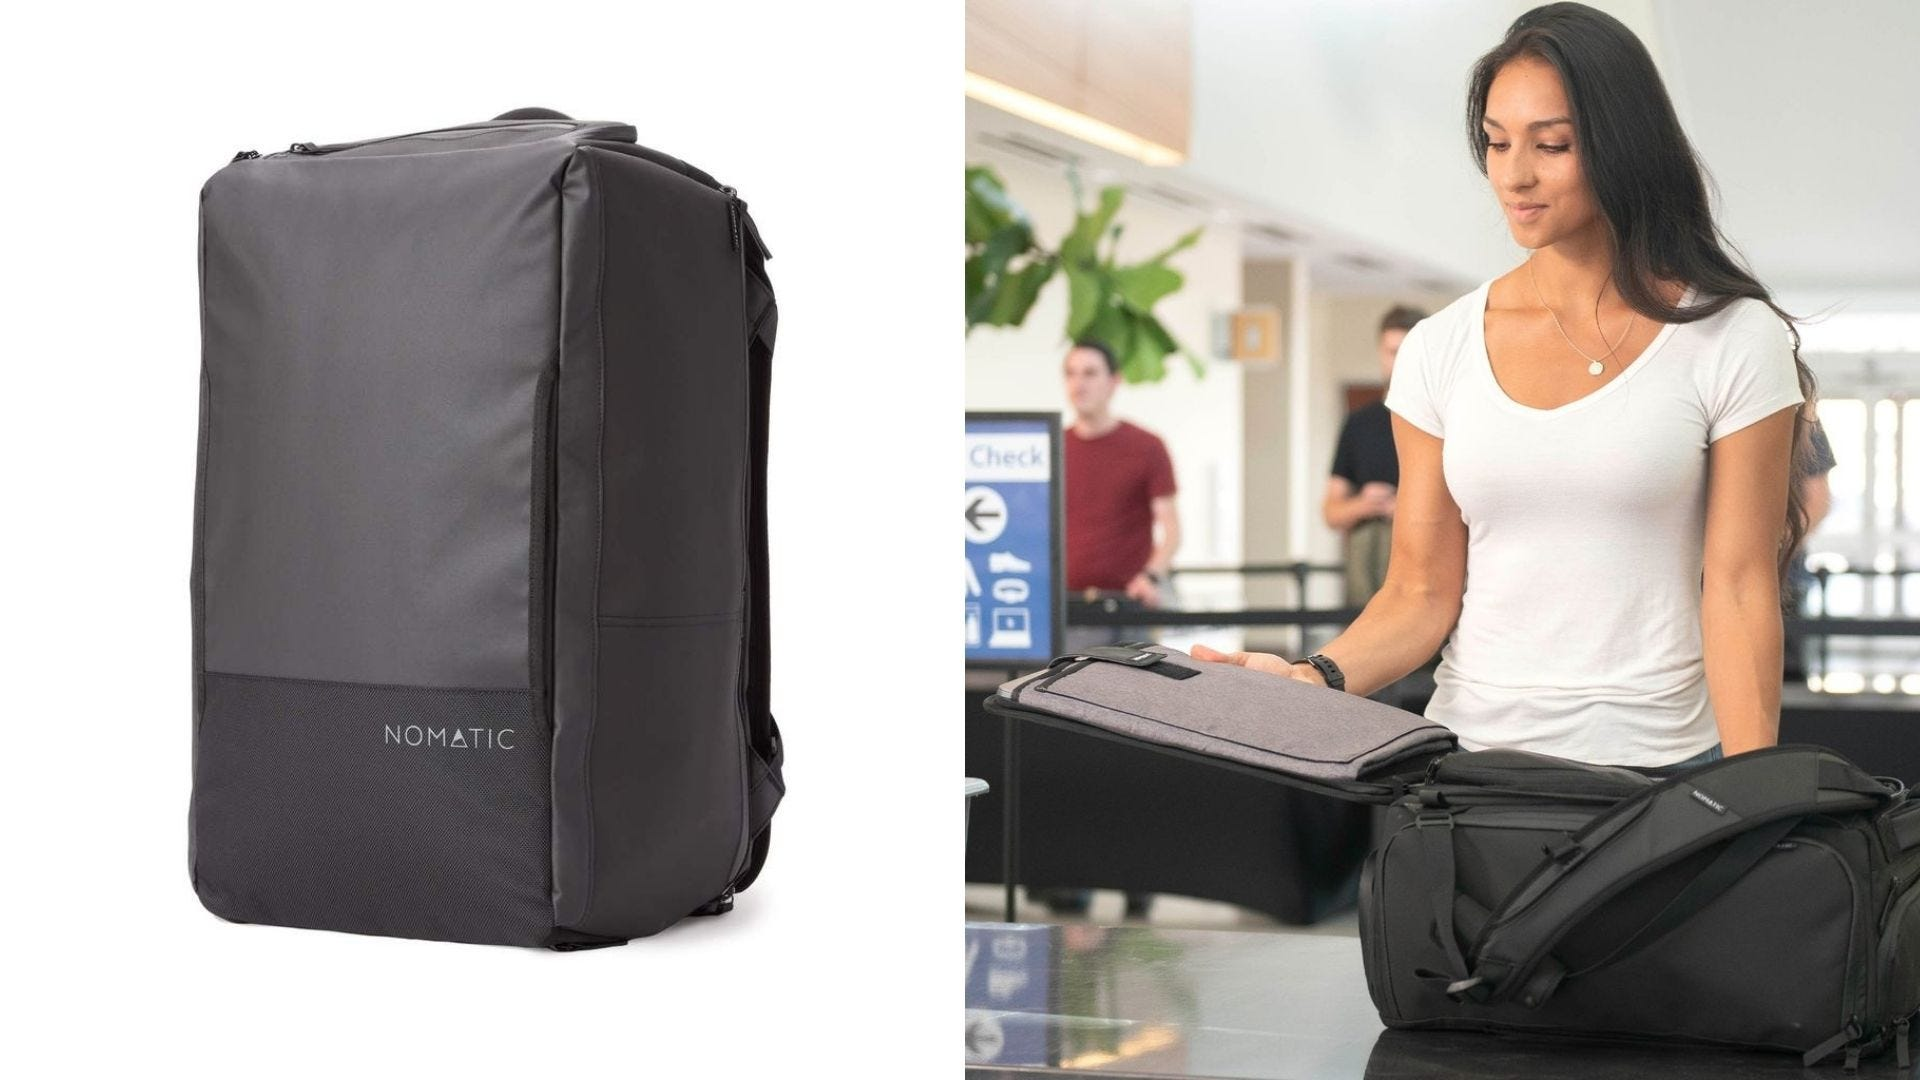 A gray travel backpack and a woman opens the backpack